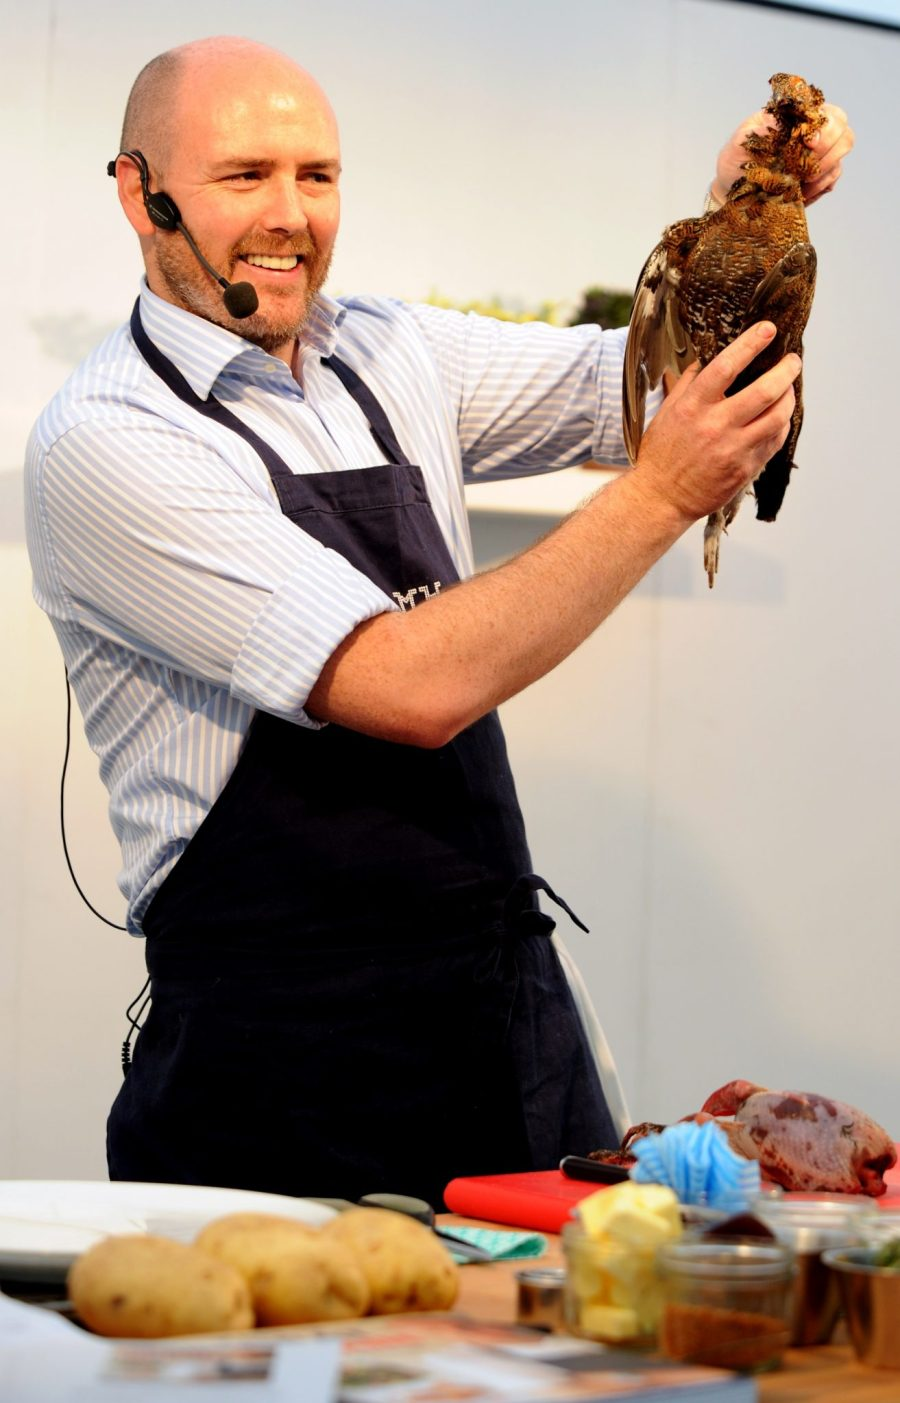 The annual Bolton Food and Drink festival drew in a large crowd this Sunday where revellers soaked up the atmosphere. Star attractions on the day were chefs John Torode of Masterchef fame and Aiden Byrne from the Manchester House restaurant. Chef Aiden Byrne gives a demo on how to cook Grouse. Picture by Paul Heyes, Sunday August 24, 2014.